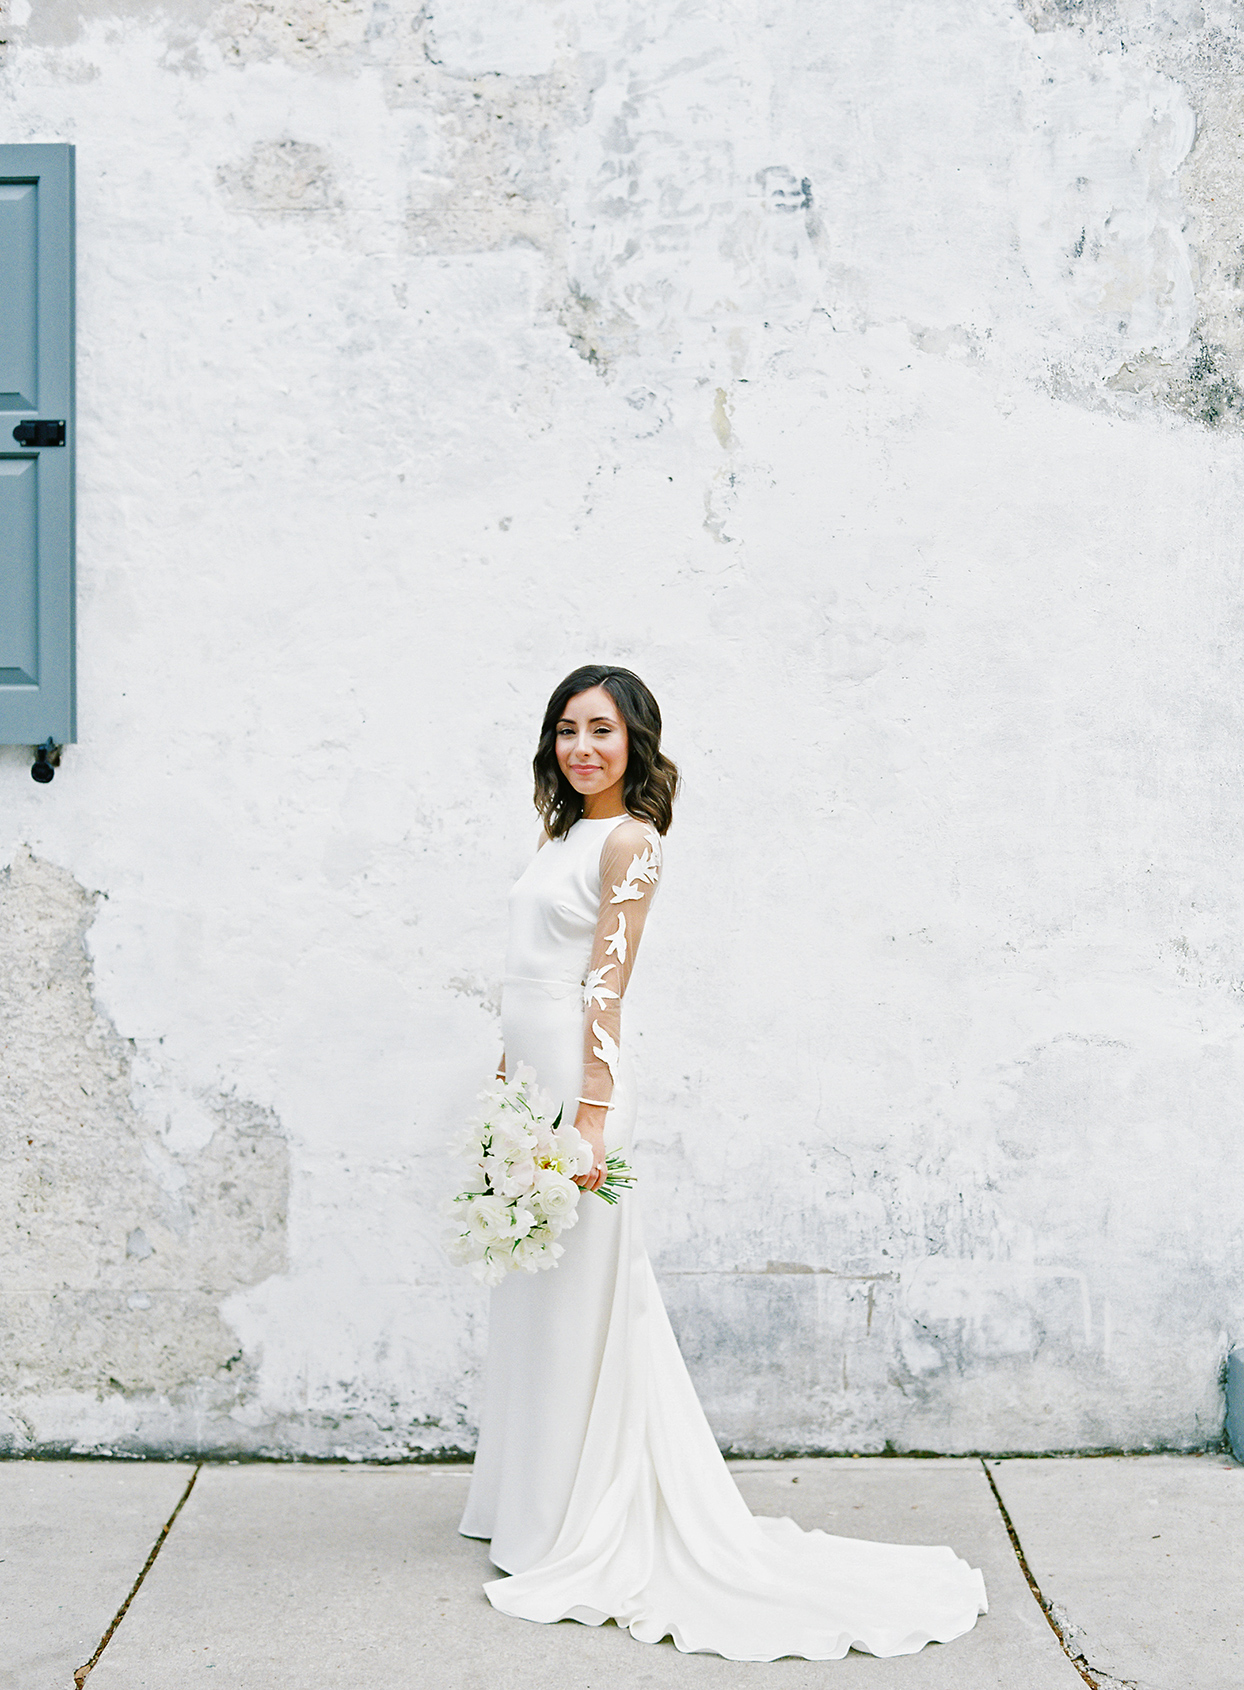 paula terence wedding bride against rough wall